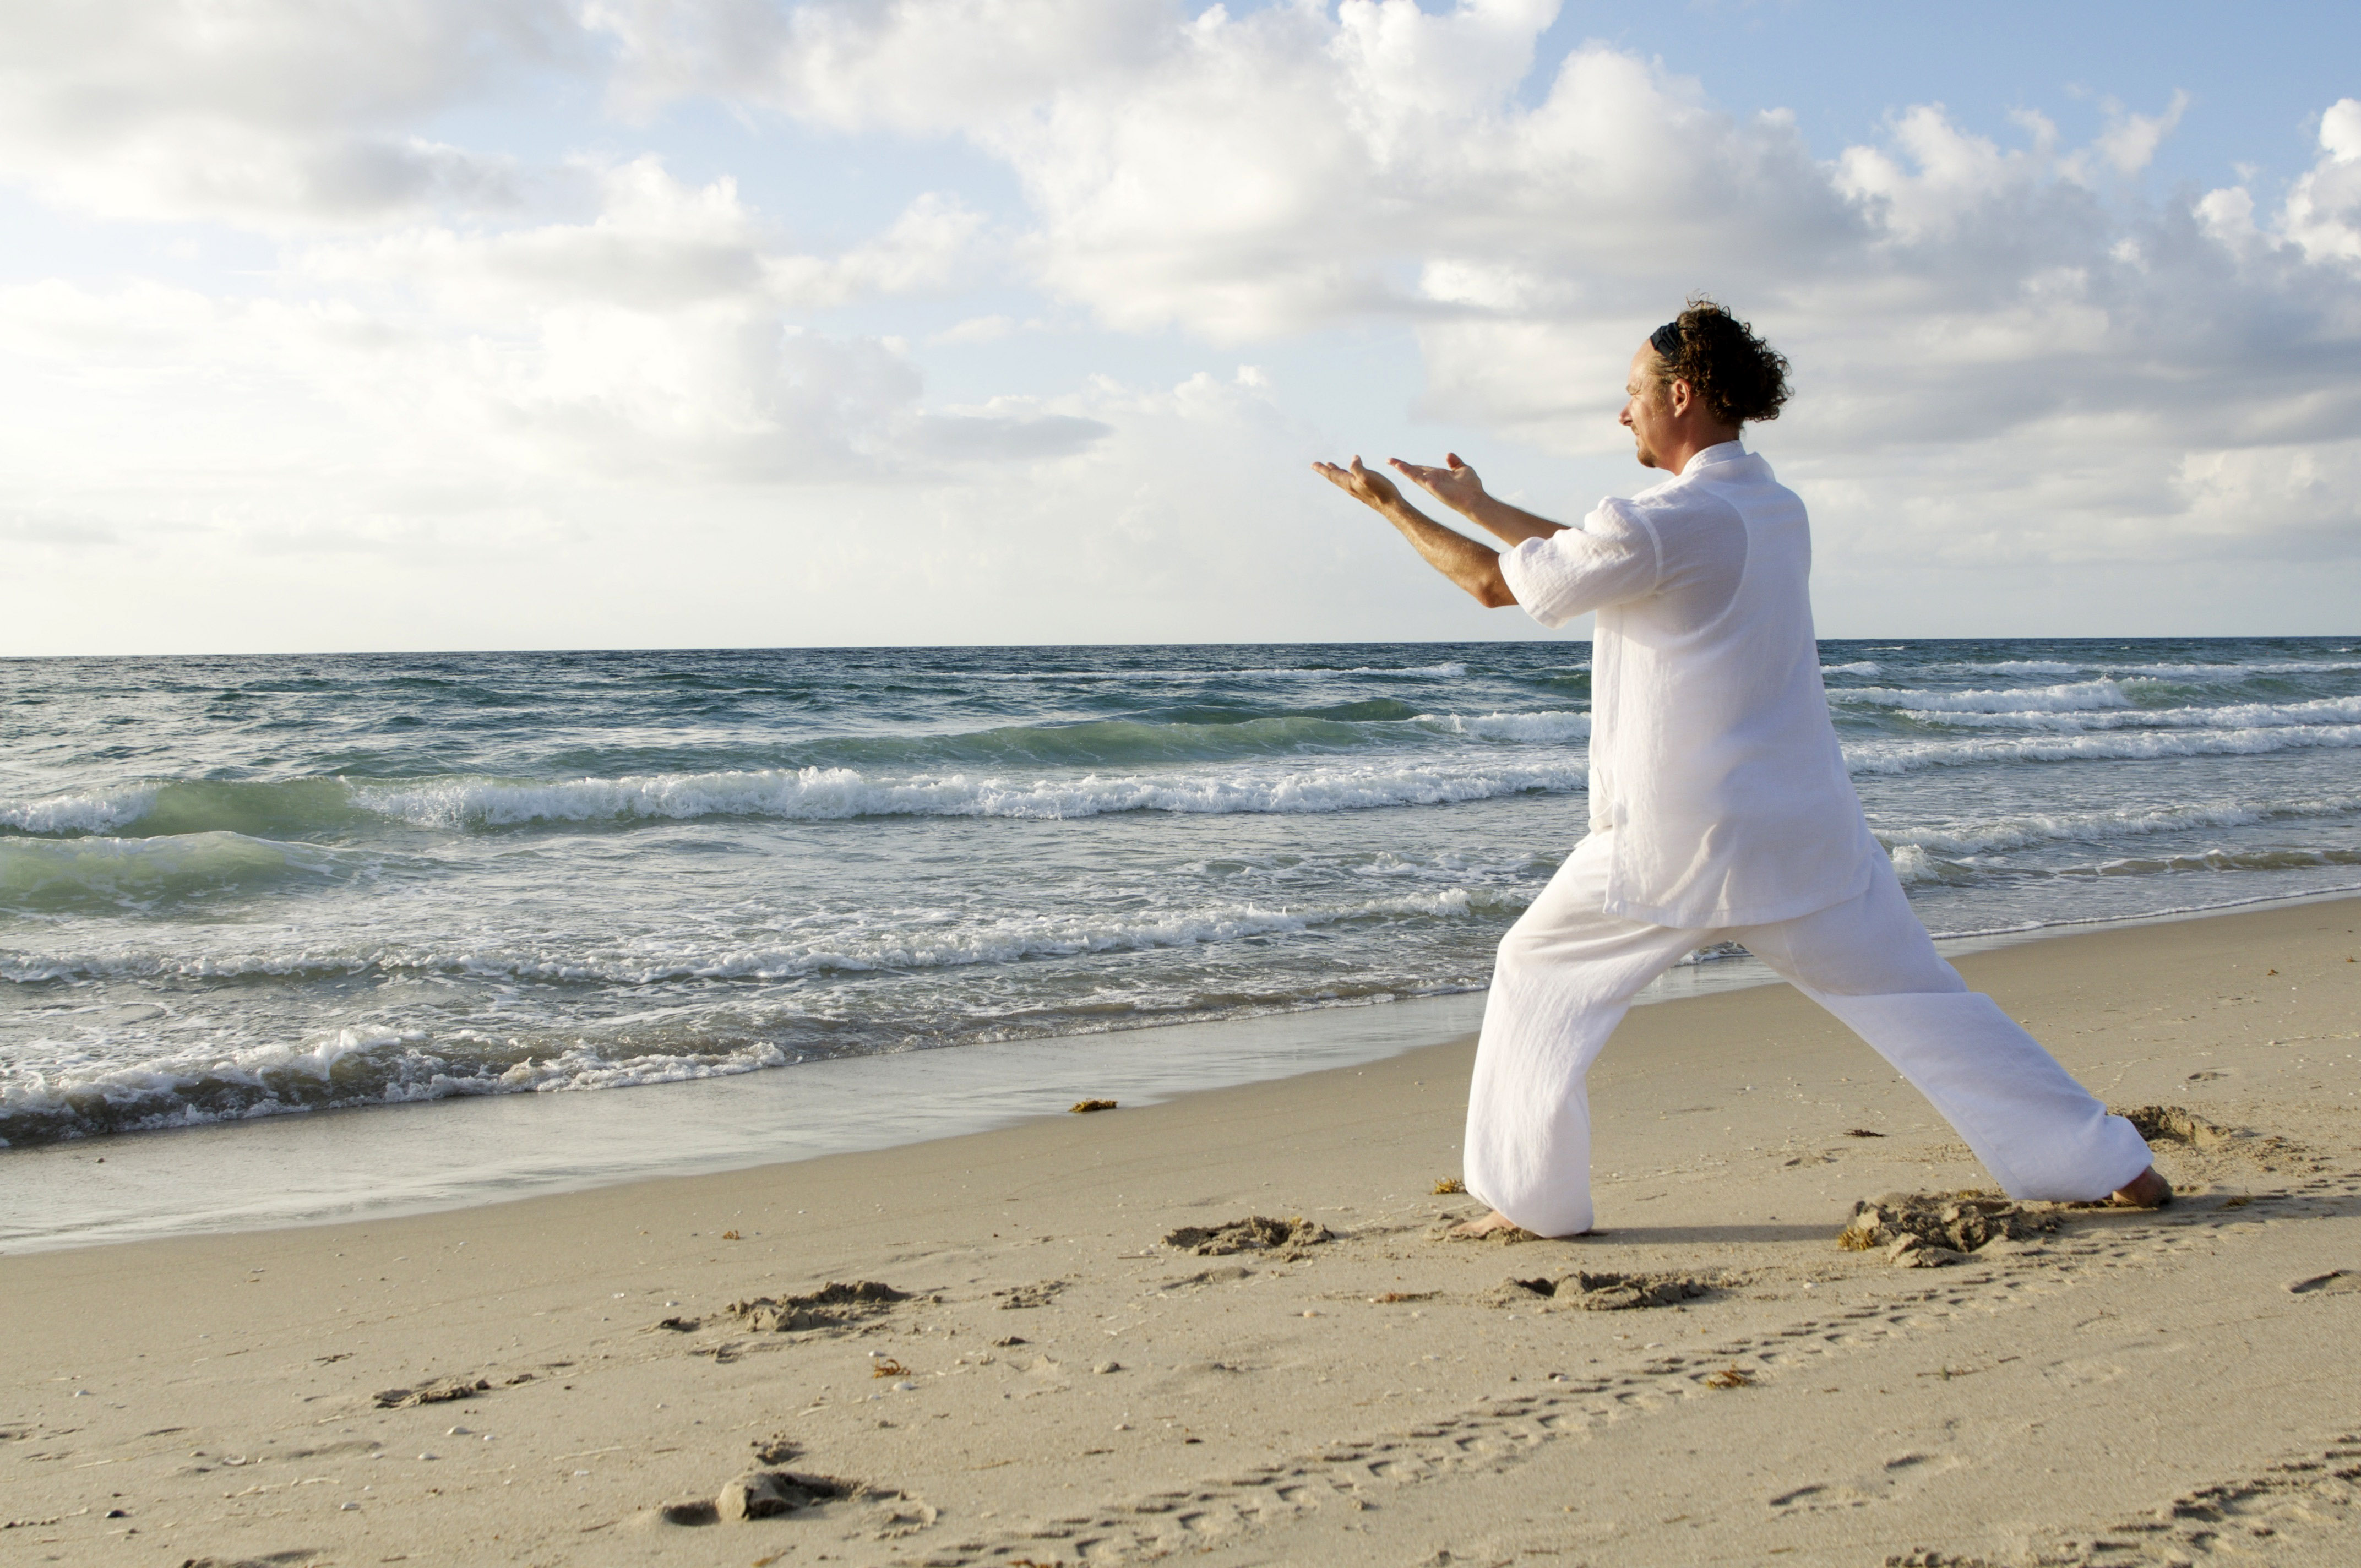 Man dressed in White Practicing Tai-Chi on the Beach image